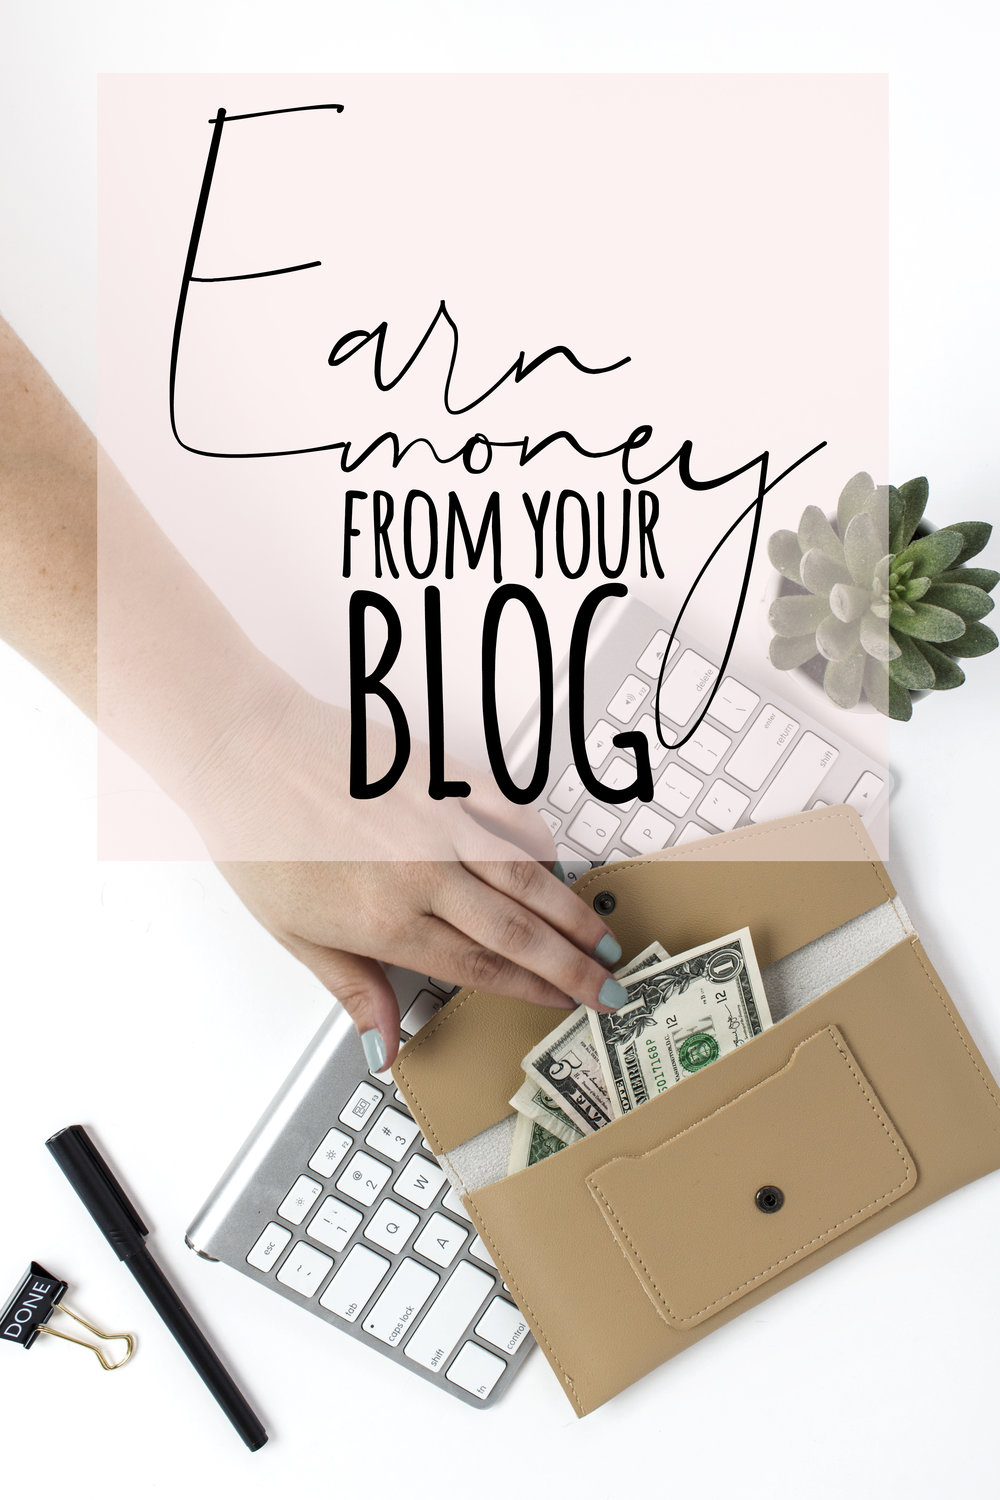 earn money from blog. earn money blogging. life of ellie grace. manchester, uk beauty and style blog. manchester blog. uk beauty blog. uk lifestyle blog. manchester lifestyle blog.